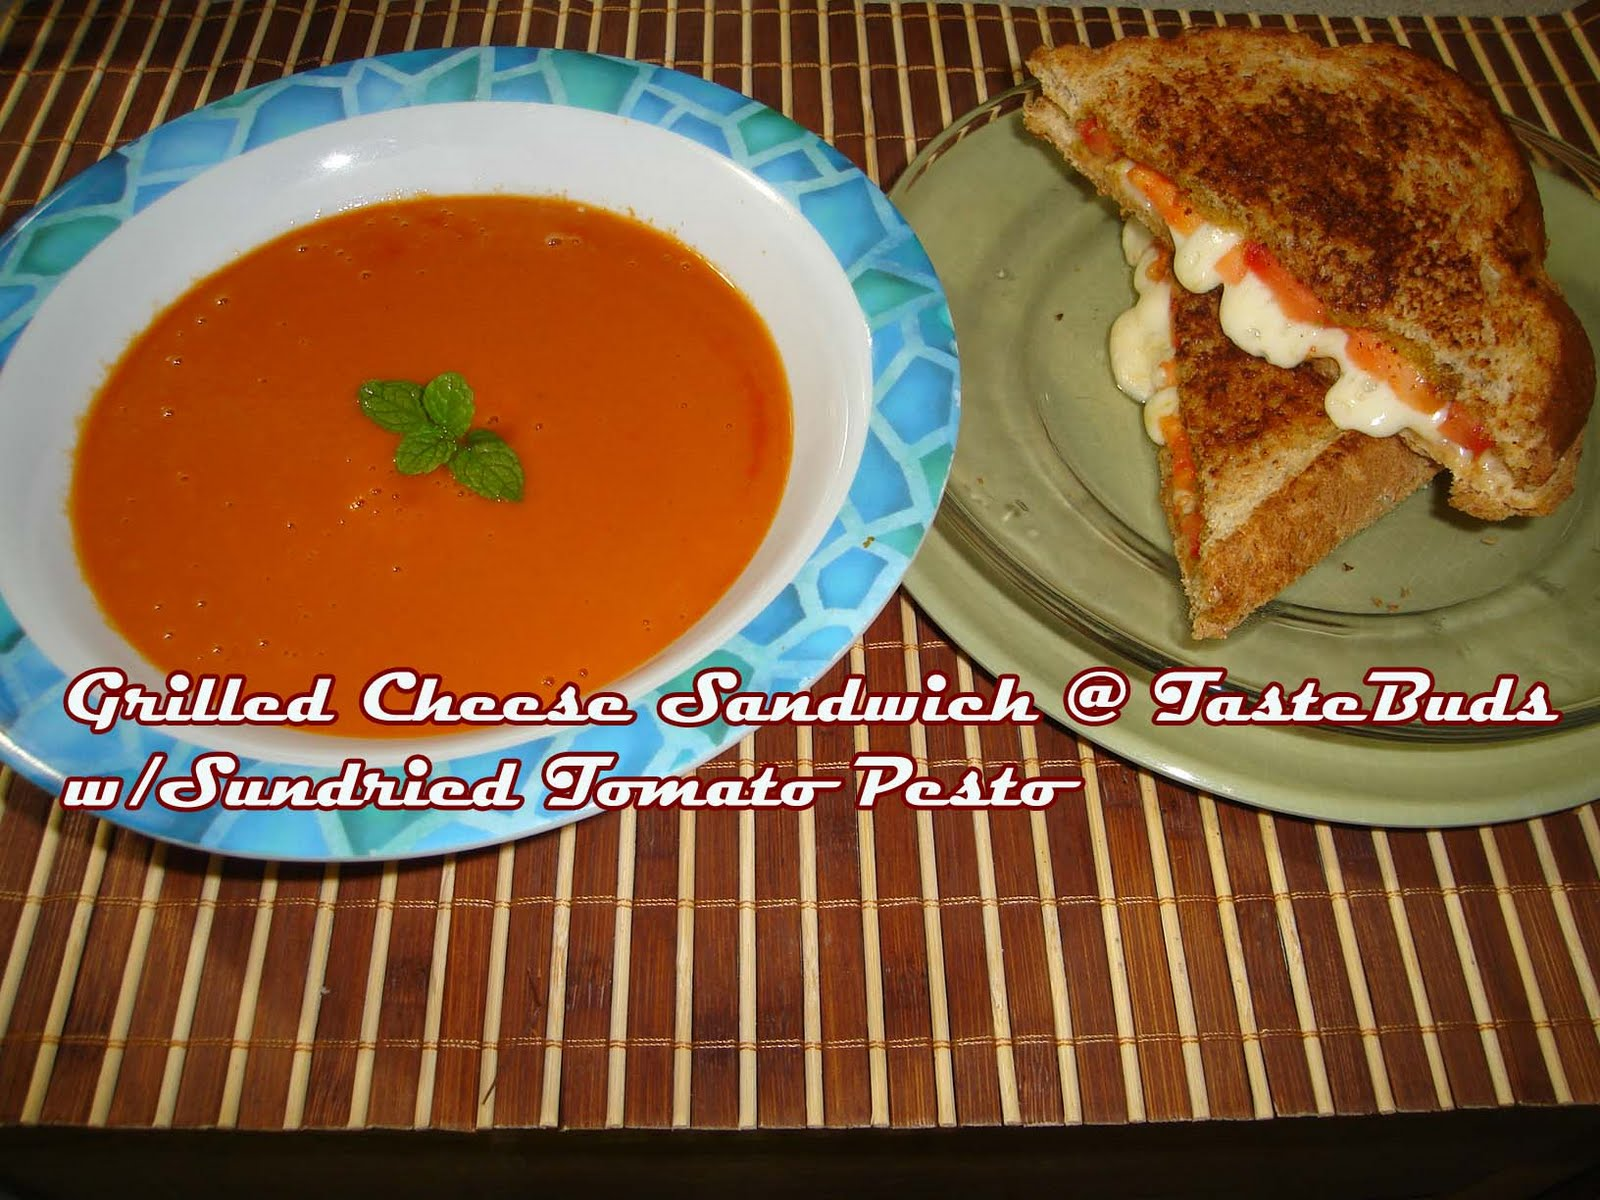 Taste Buds: Grilled Cheese Sandwich with Sundried Tomato Pesto